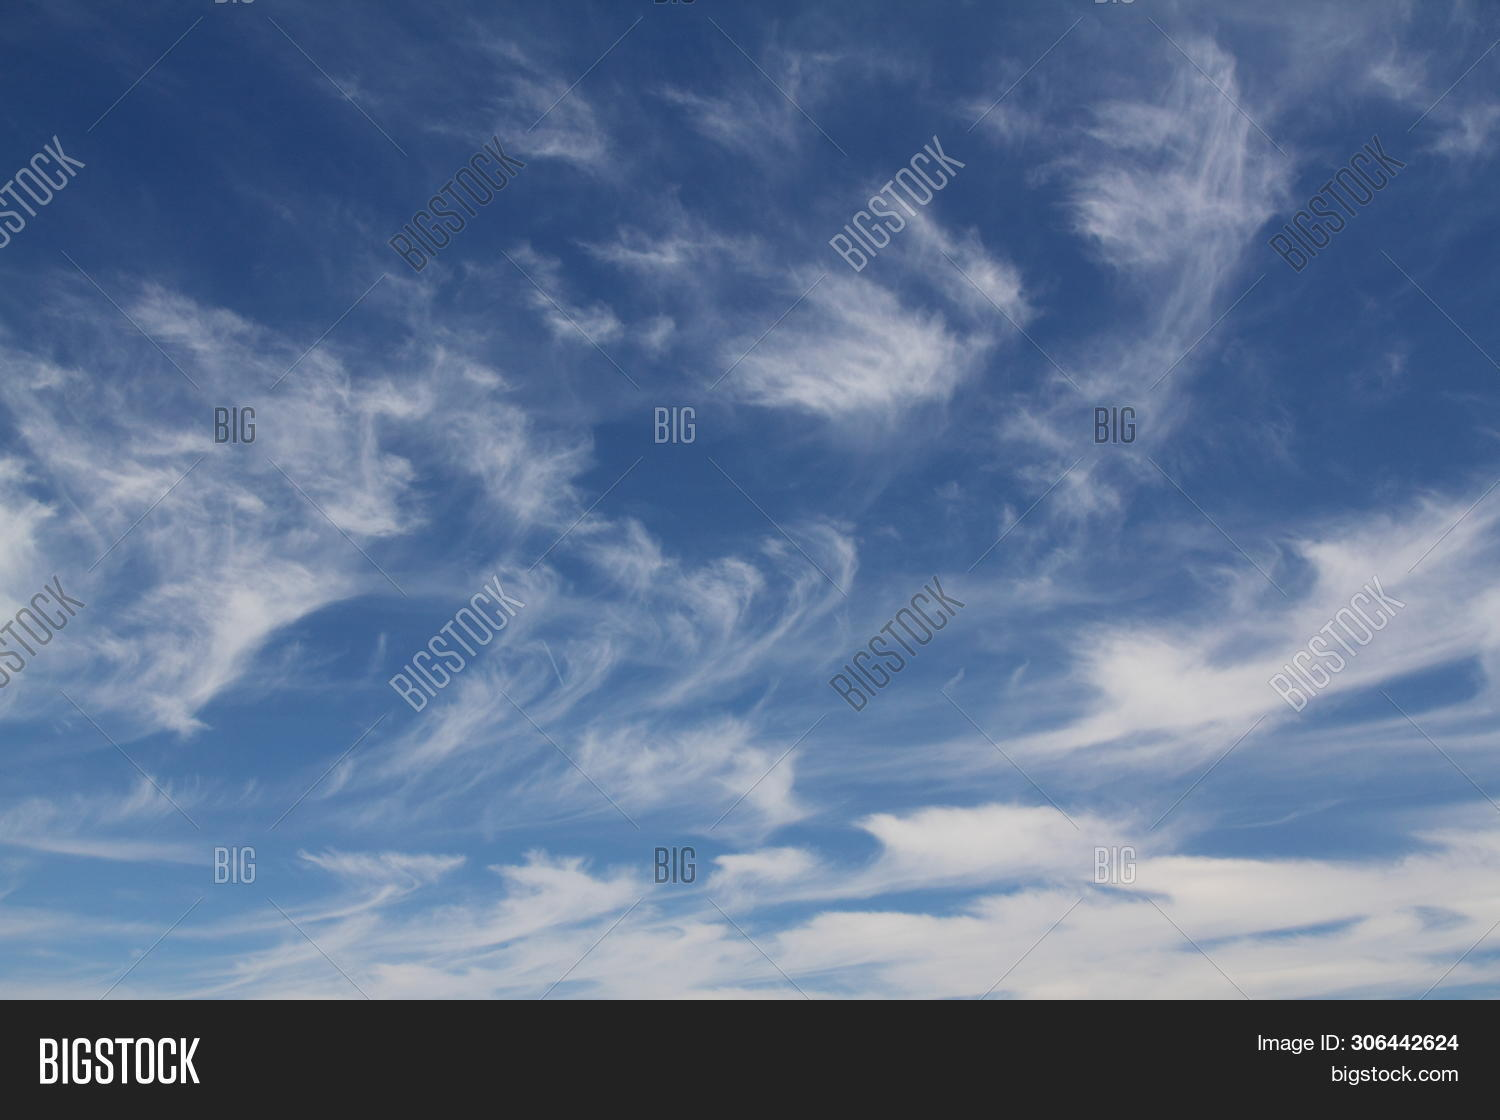 abstract,air,atmosphere,background,backlight,beam,blue,bright,clear,climate,clouds,color,day,dramatic,fantastic,freedom,heavens,high,horizon,landscape,light,natural,nature,outdoors,overcast,ray,scenic,sky,sky-background,sky-clouds,sky-landscape,sky-nature,sky-scene,sky-view,skyscape,space,summer,sun,sunbeam,sundown,sunlight,sunny,sunrise,sunset,sunshine,vast,vast-sky,view,weather,white